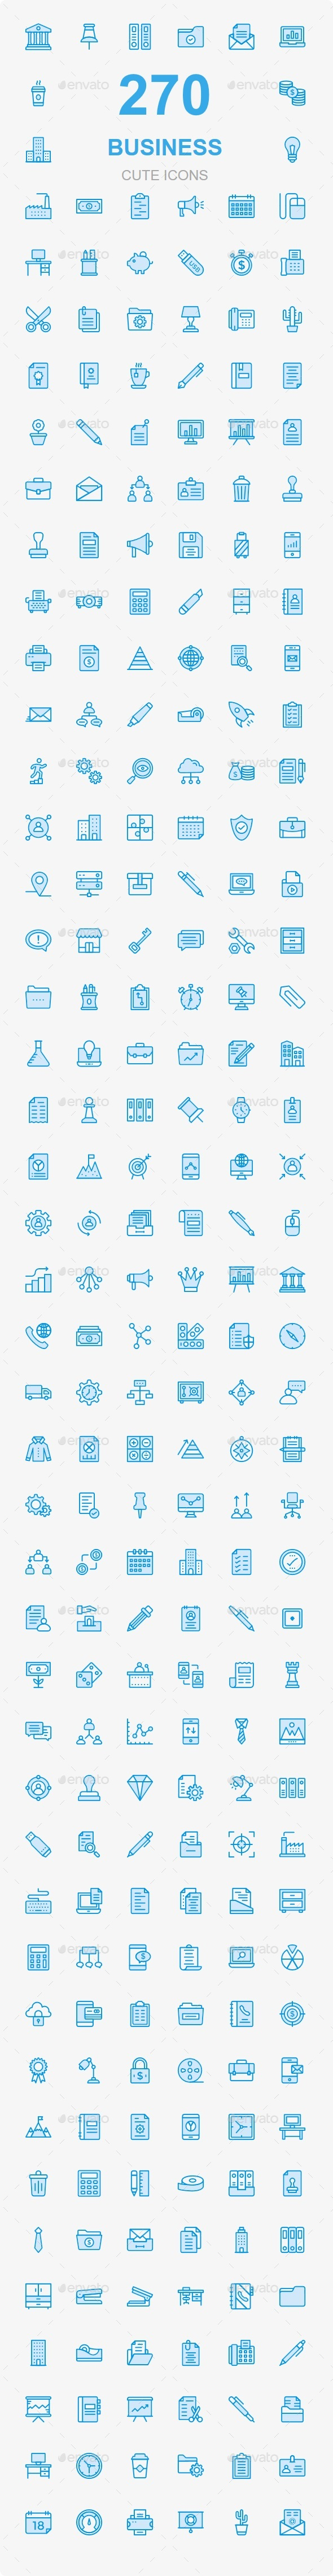 GraphicRiver Bussines and Office Cute Style icons 20779986